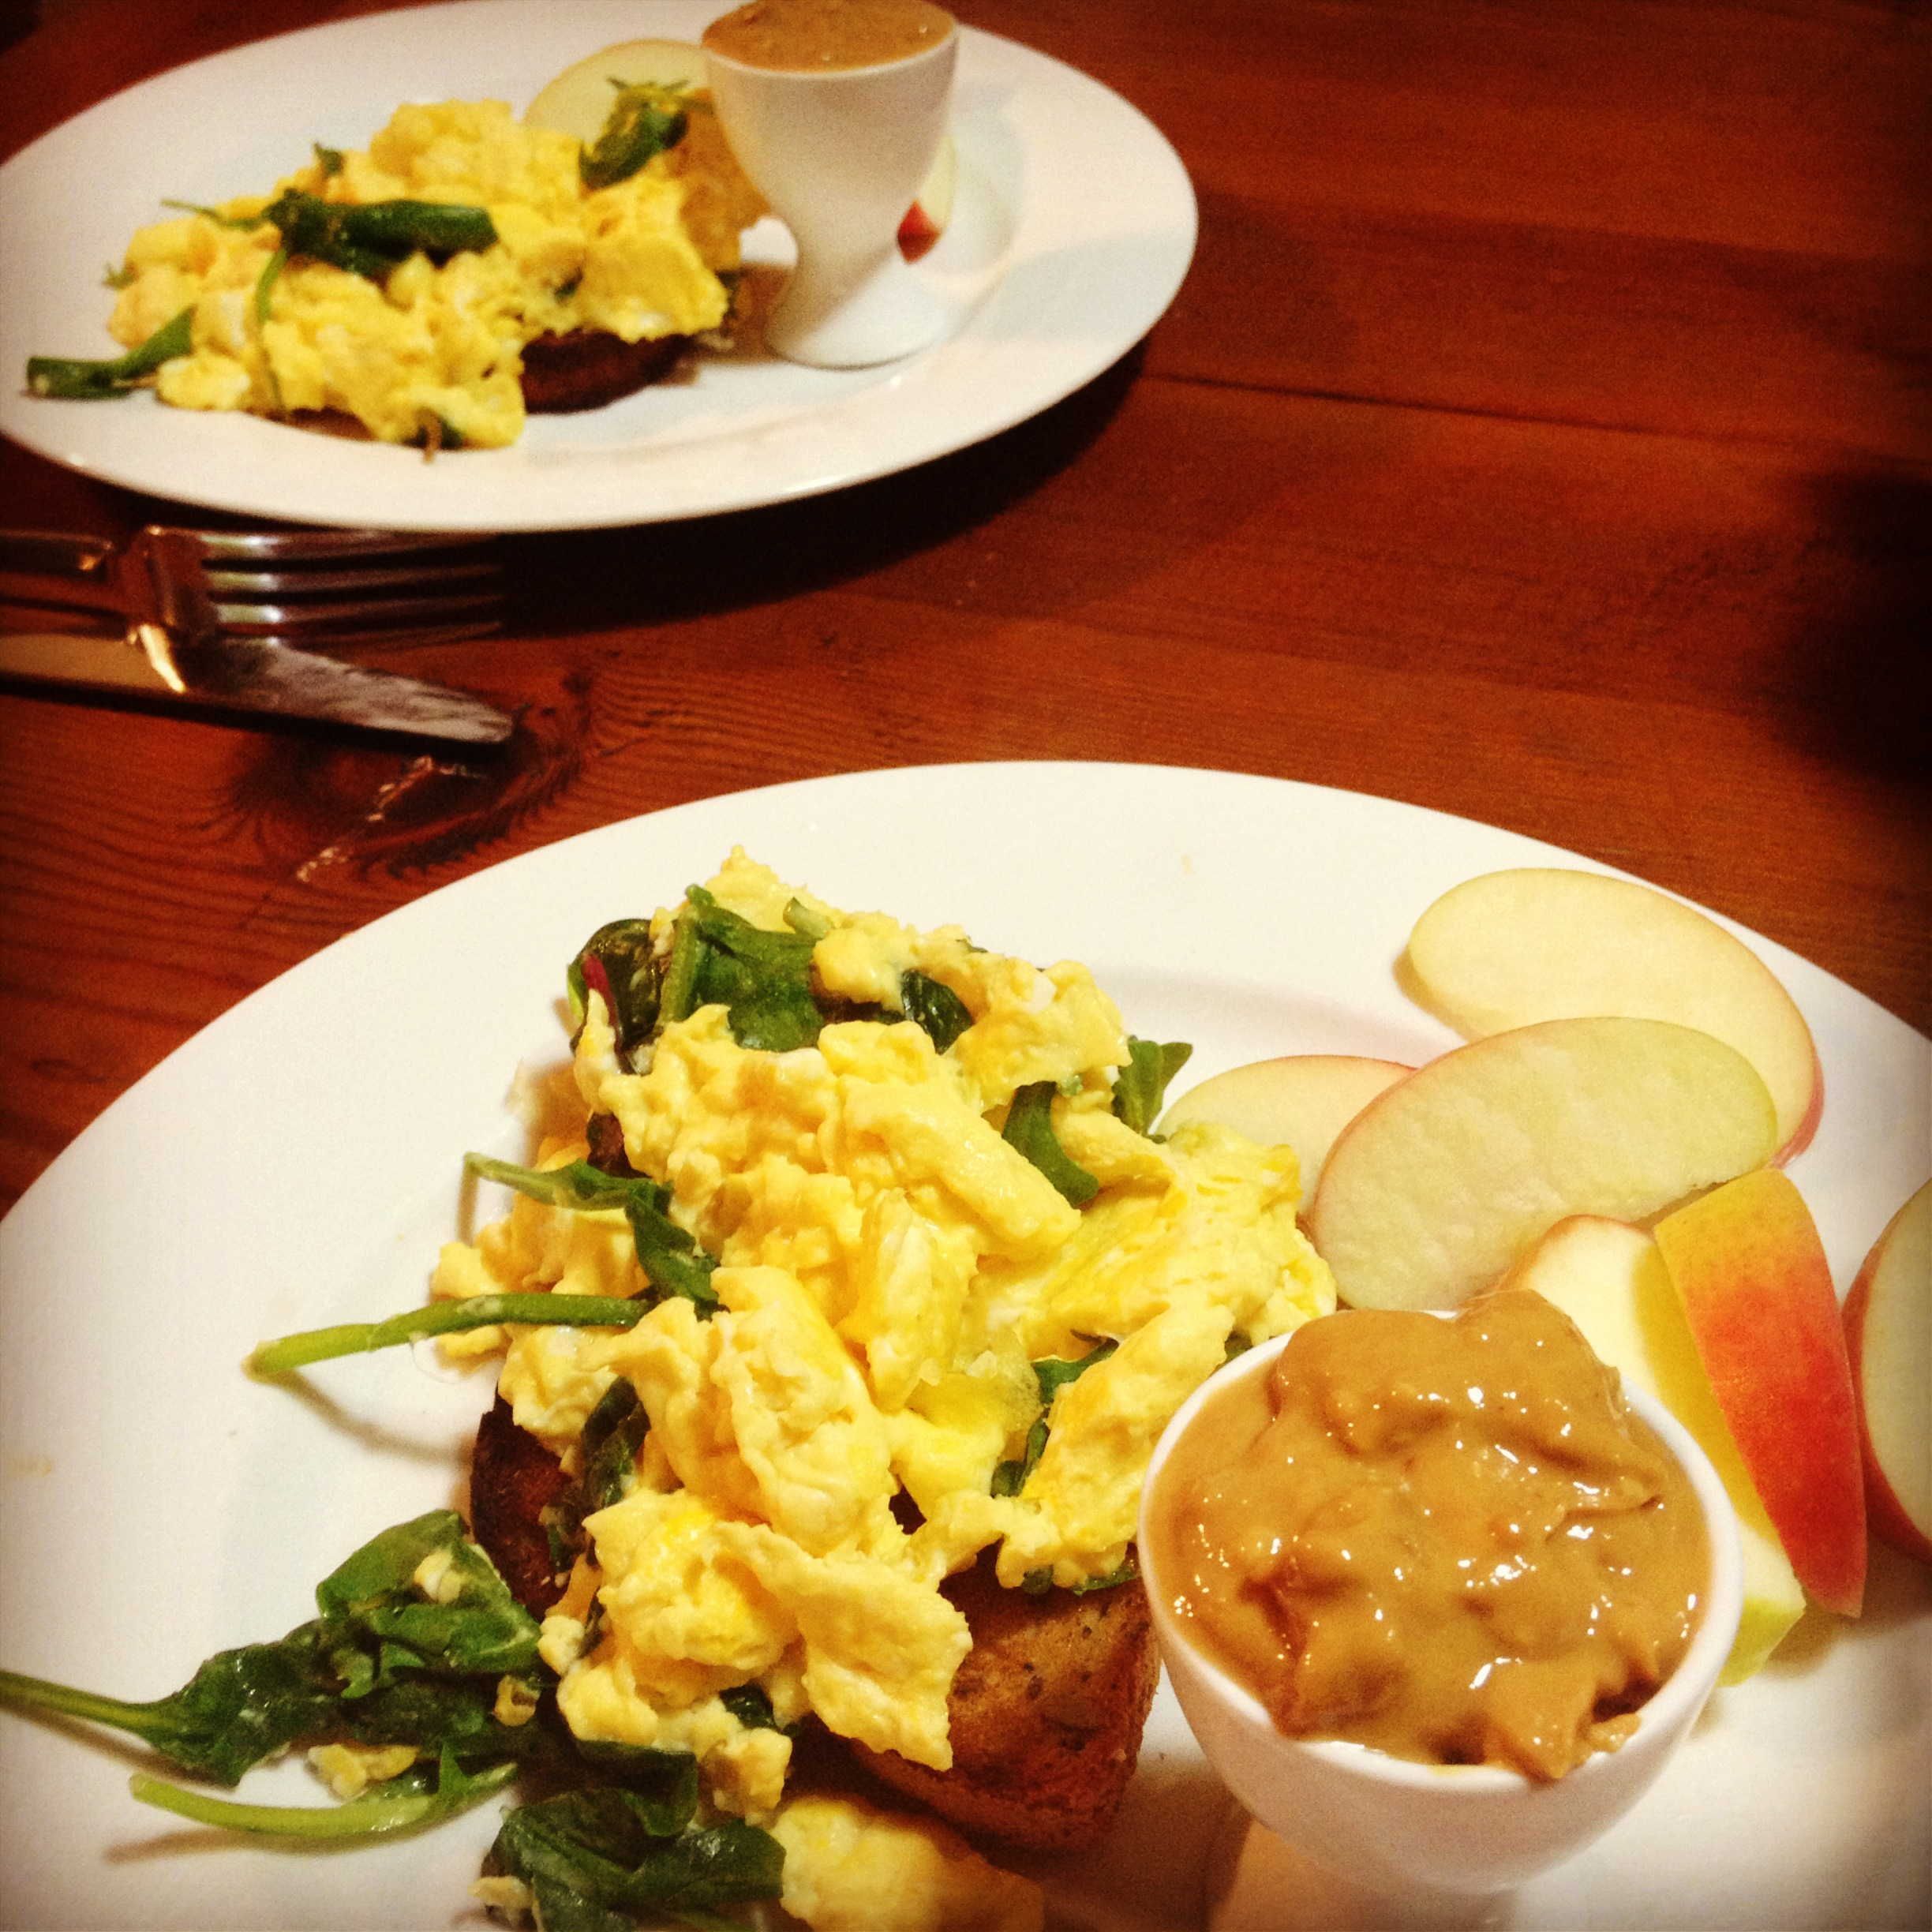 Scrambled eggs with spinach, and a side of apple and peanut butter.